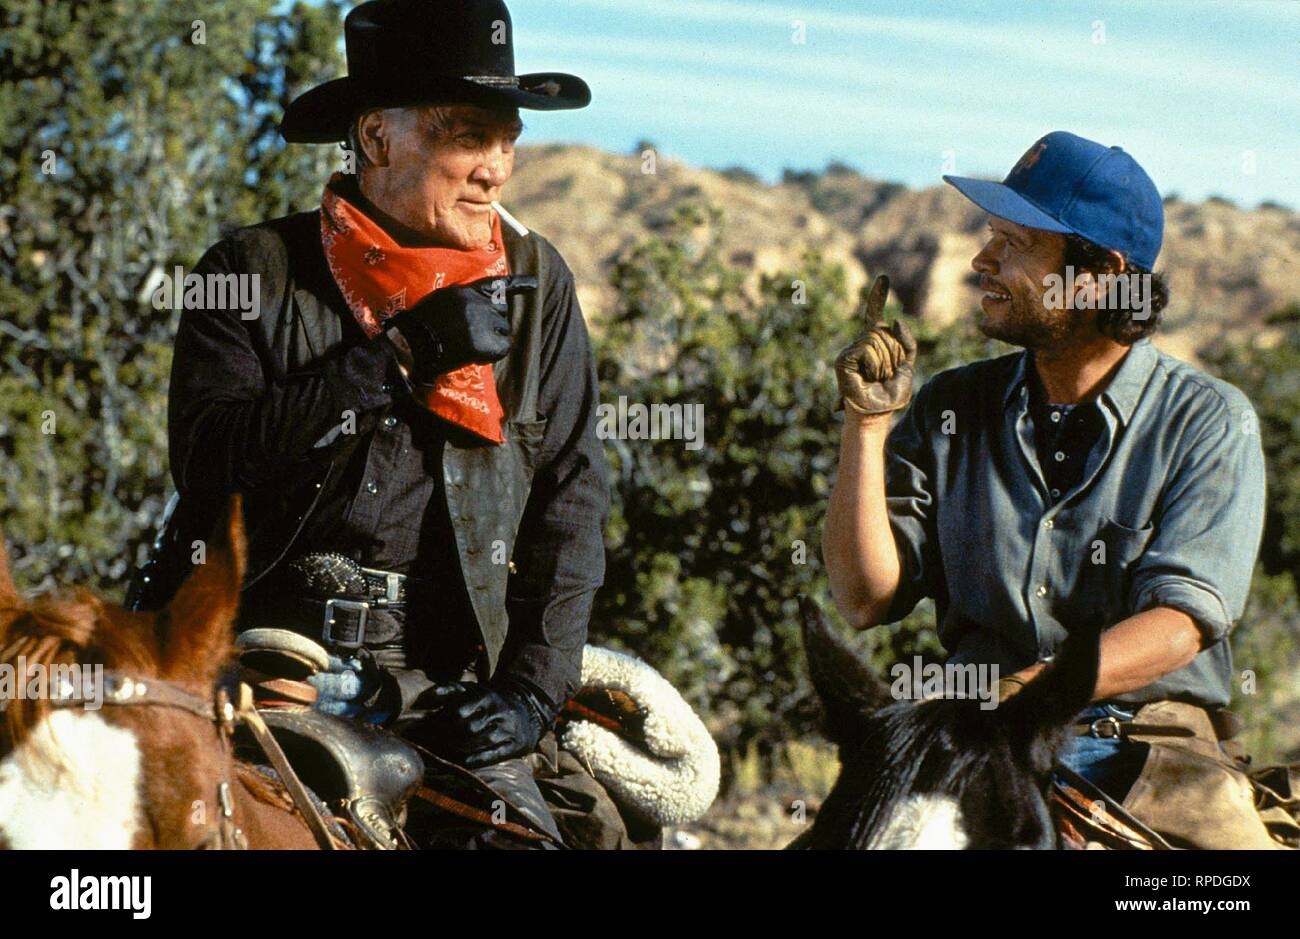 City Slickers High Resolution Stock Photography And Images Alamy